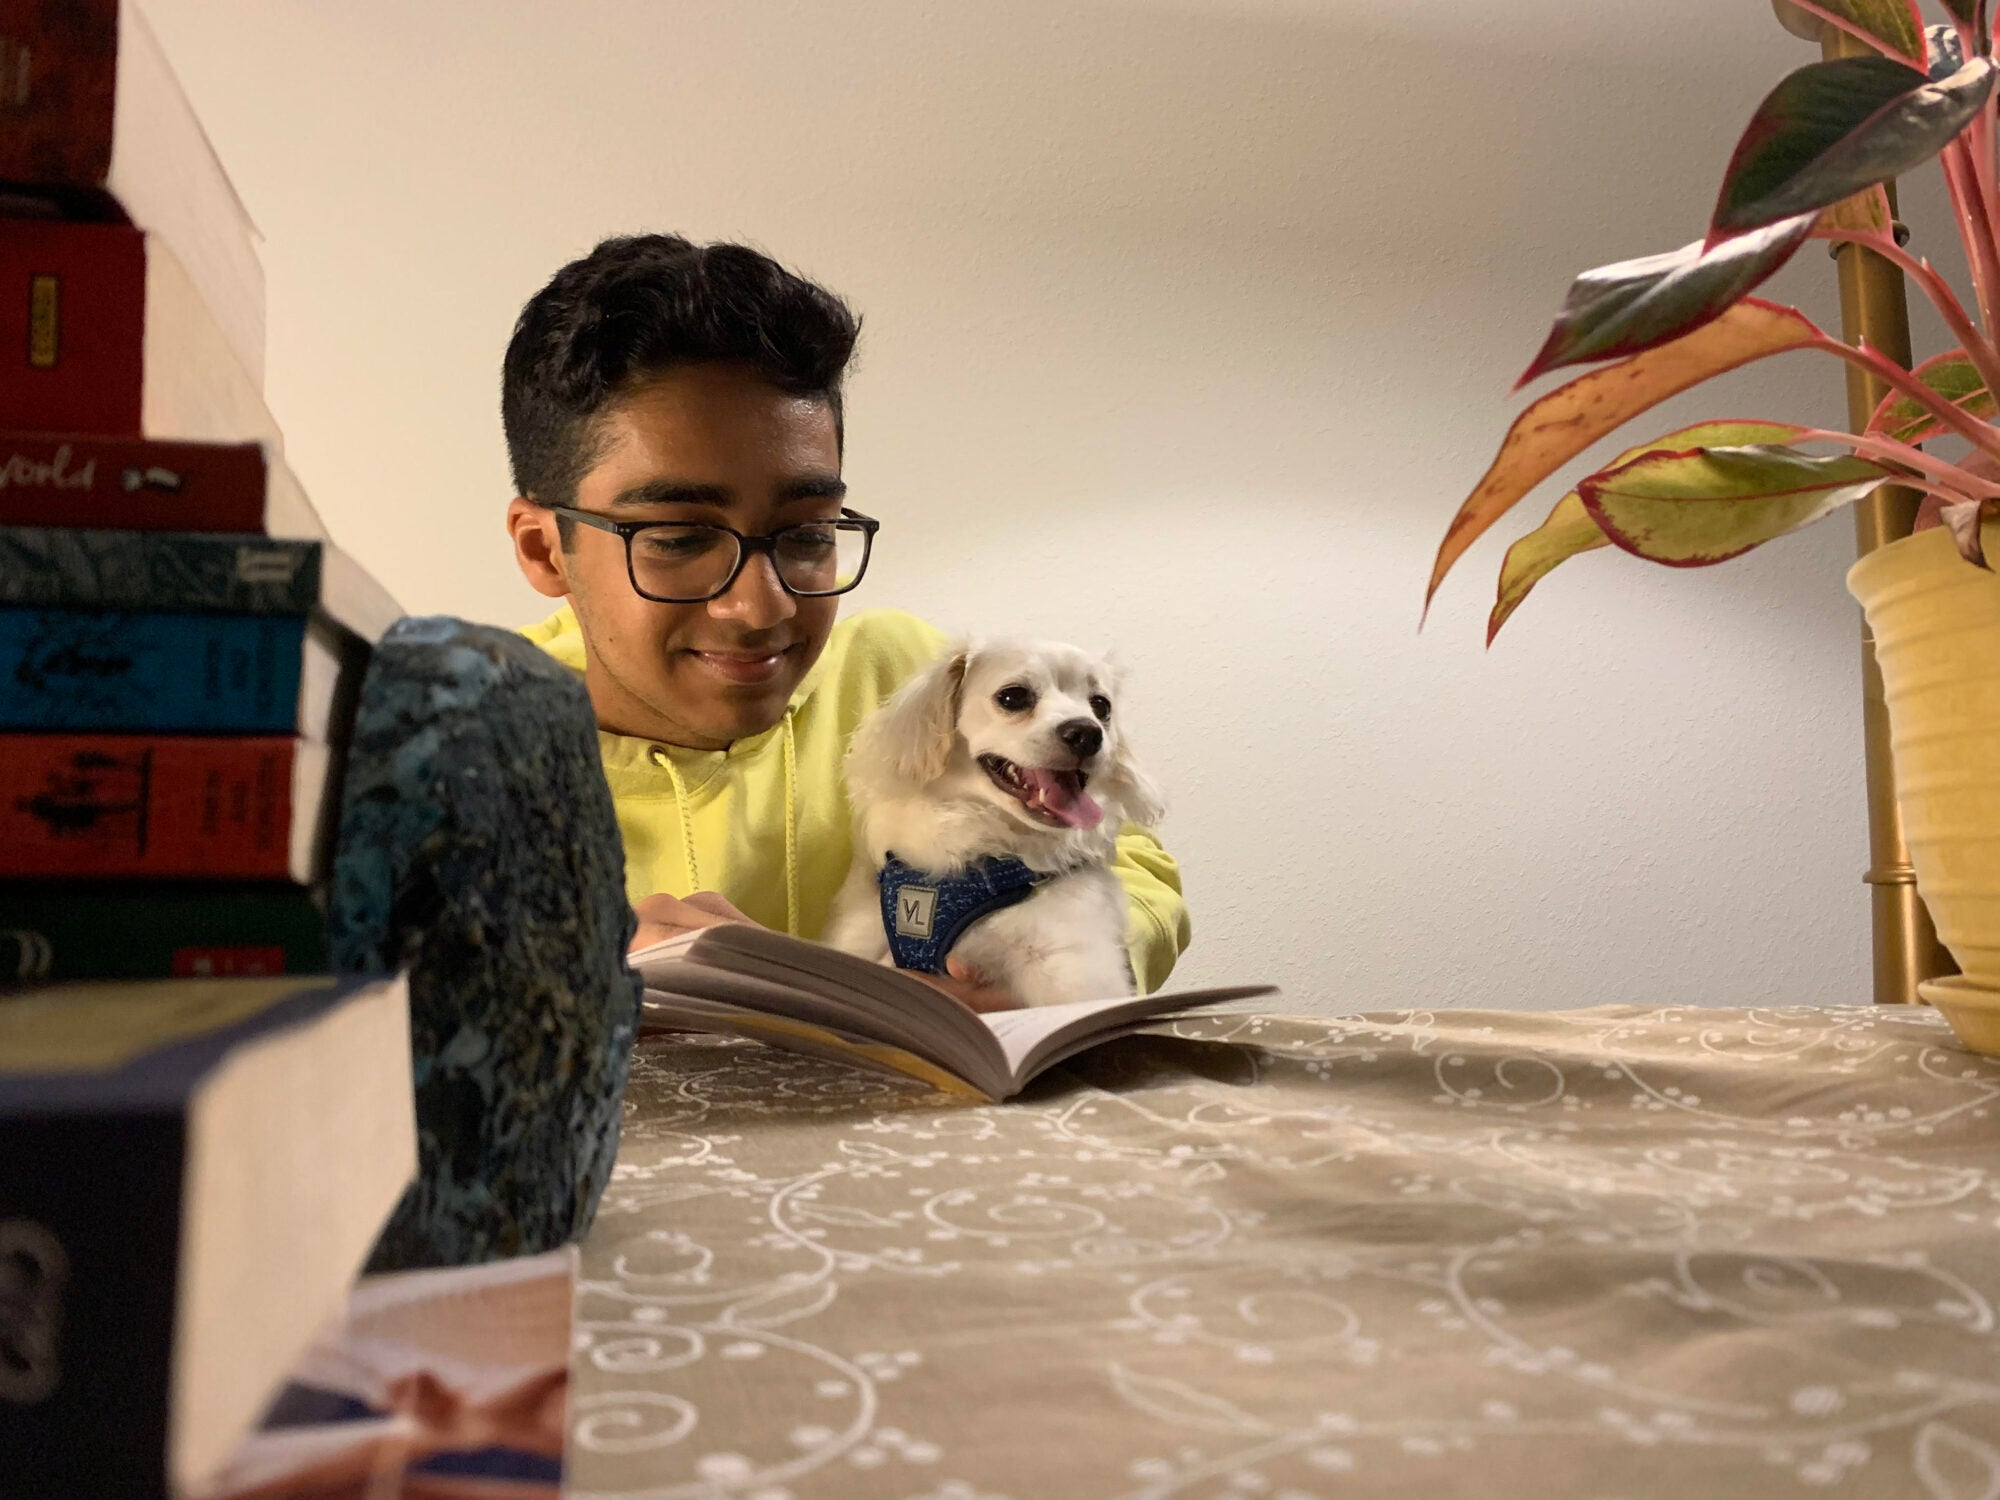 A student reads a book while holding a small puppy